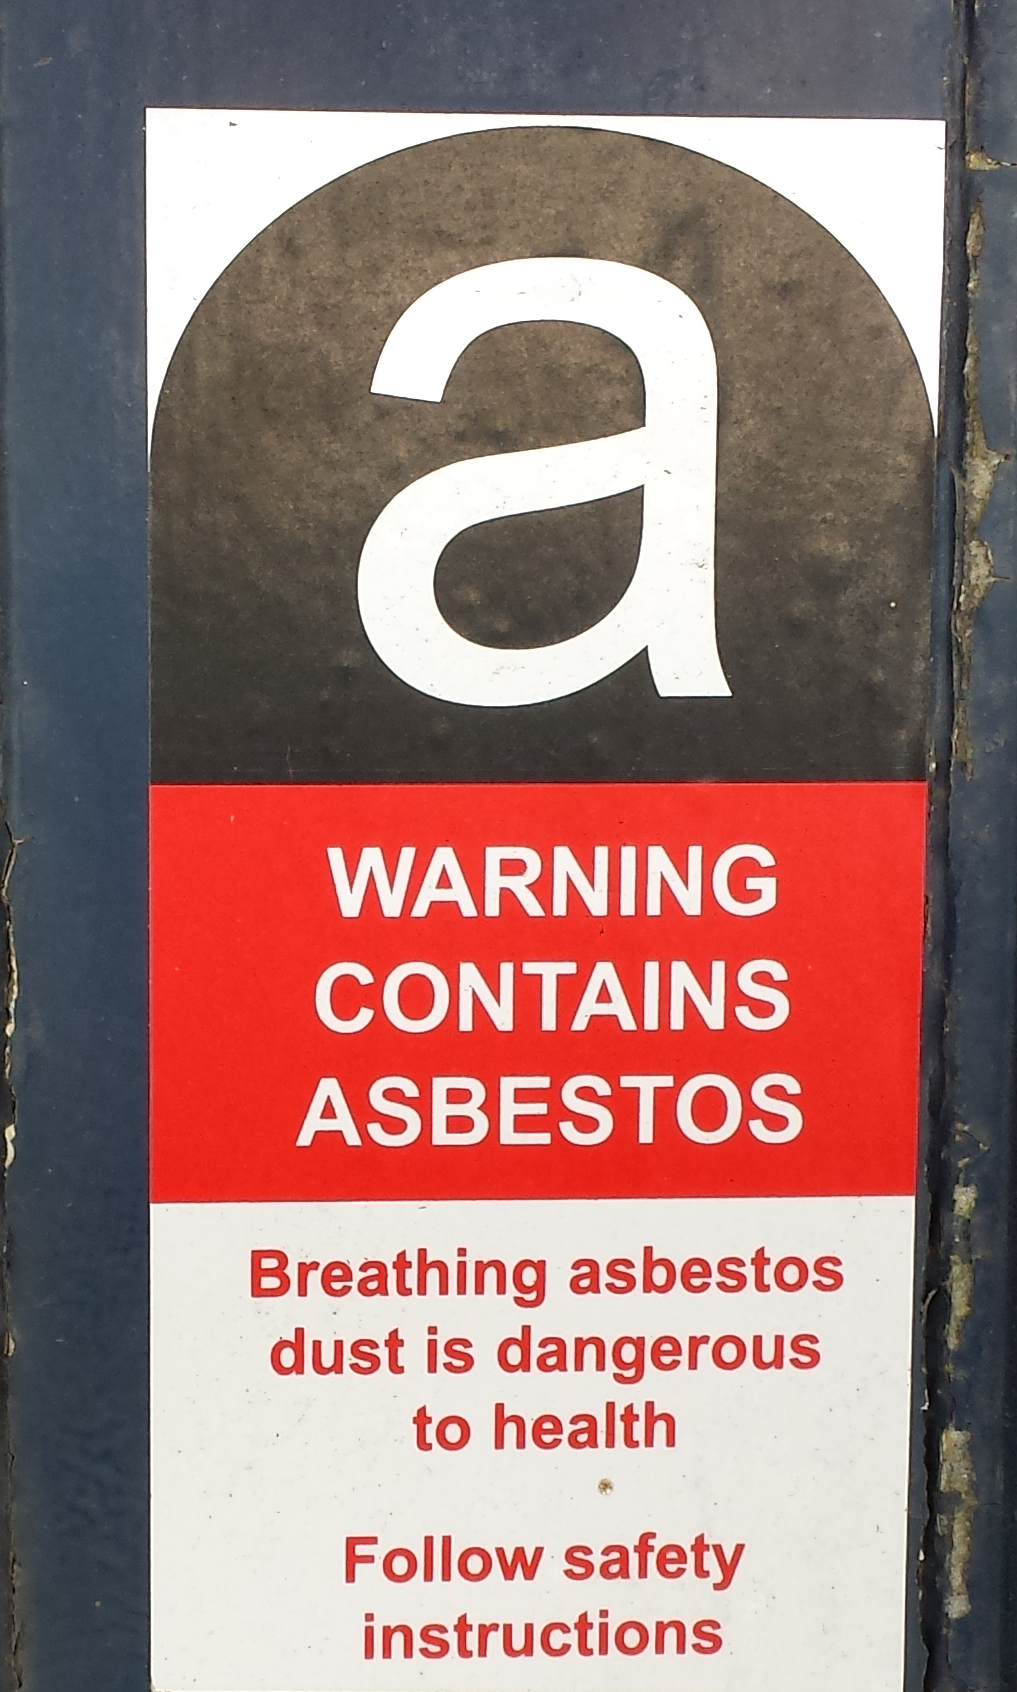 People who are constantly exposed to asbestos also have a higher chance of being affected with lung cancer. (Image: MetalFusion81 via flickr CC BY-SA 3.0)